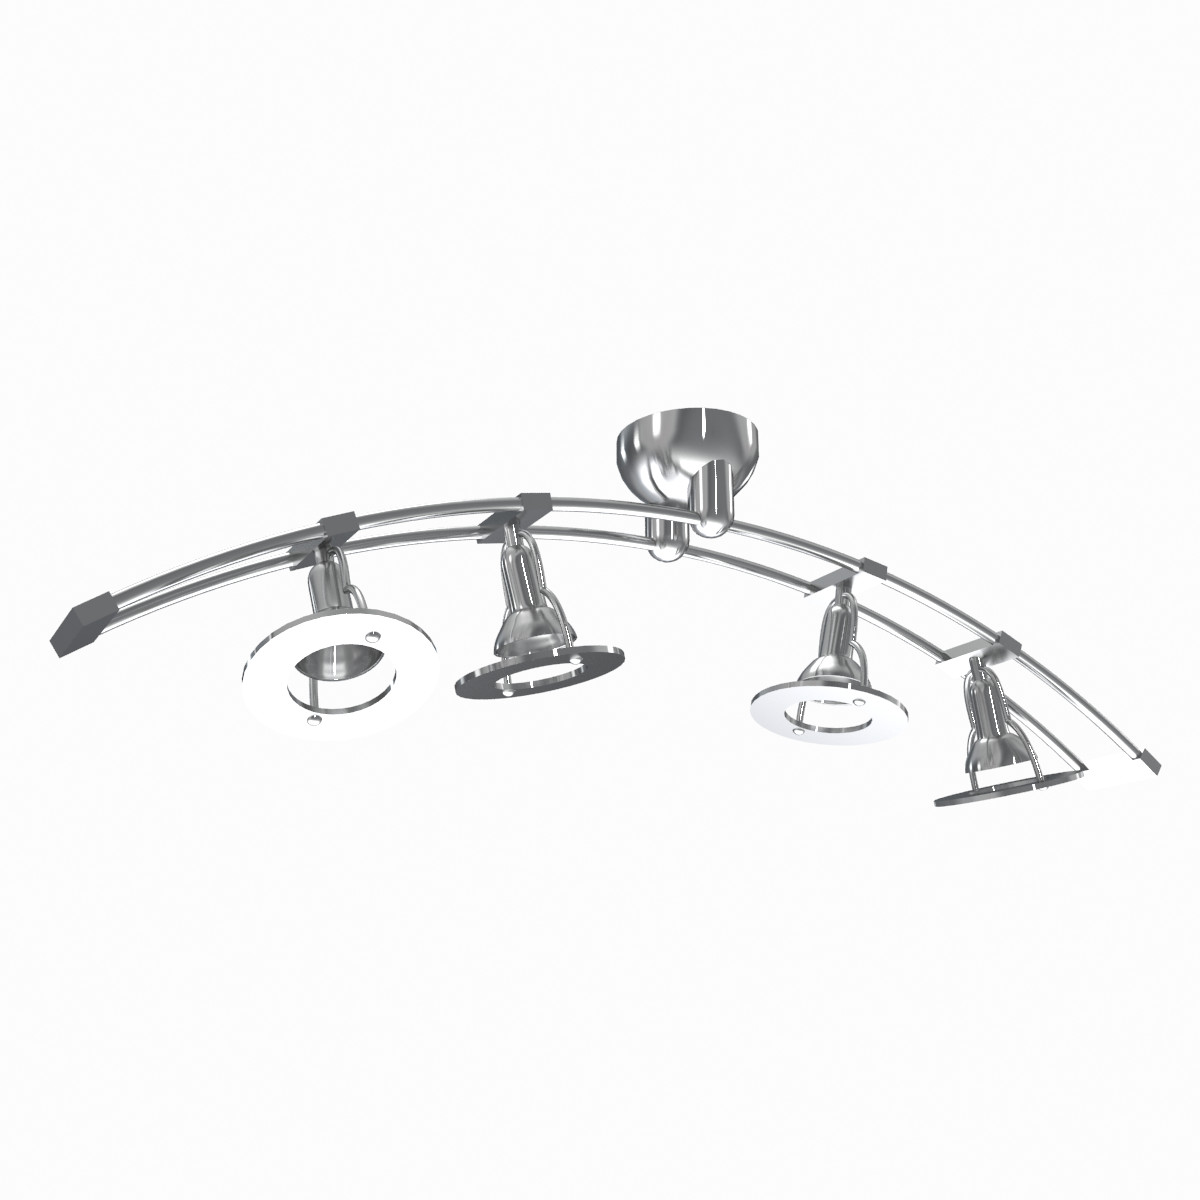 ceiling-lights-rig-4-spots---SIGNATURE-IMAGE-1.png